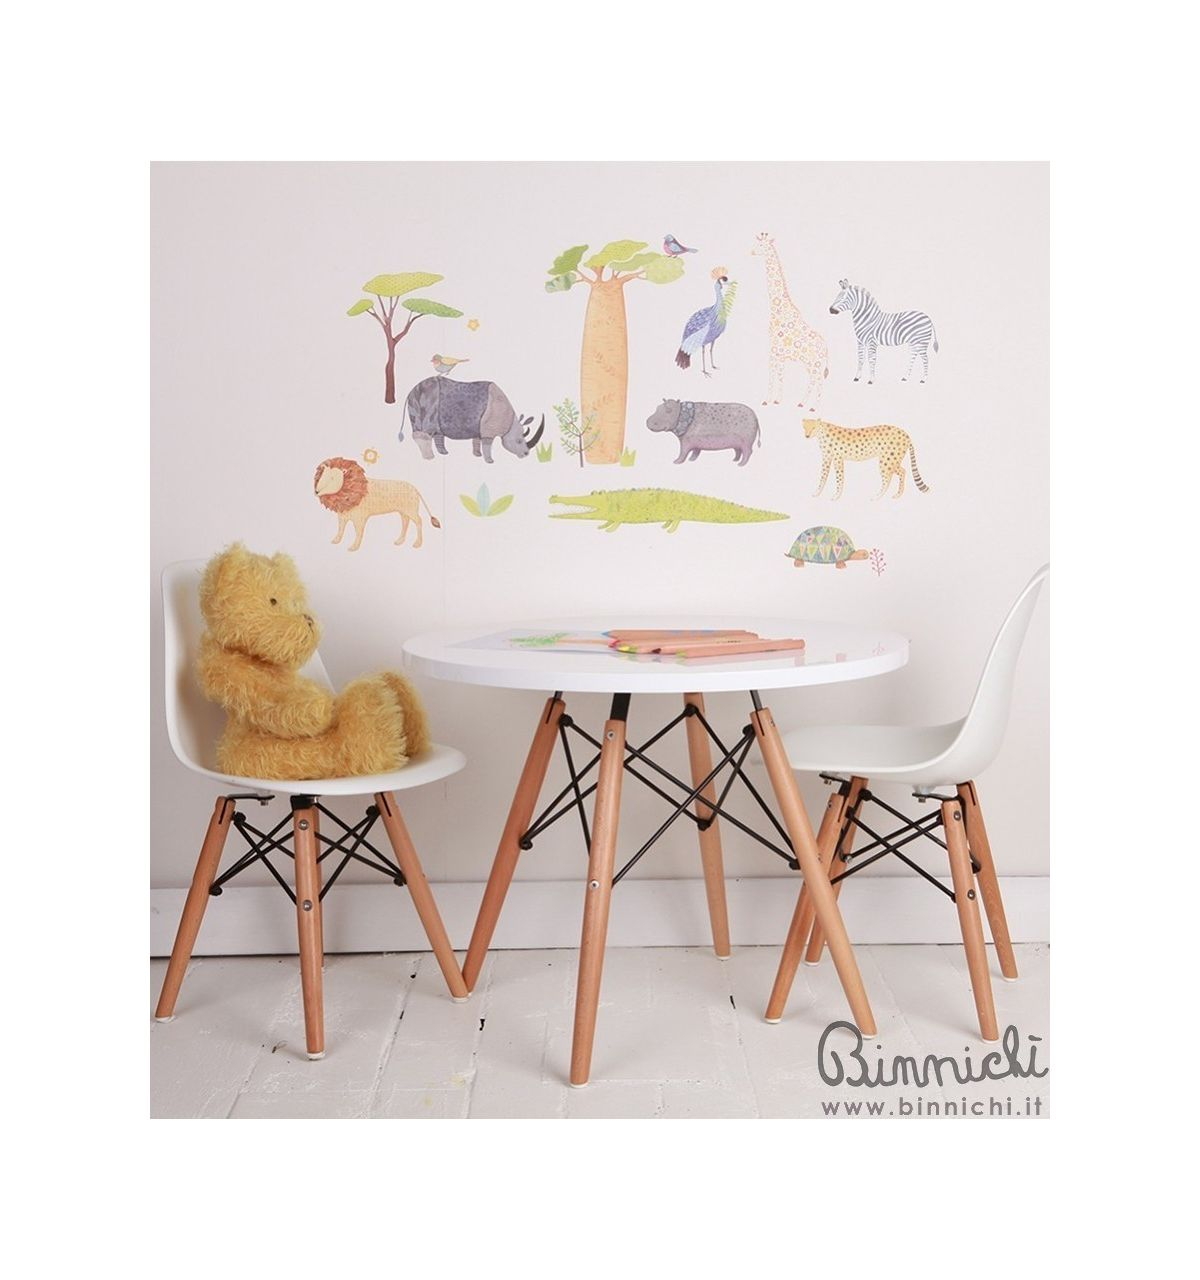 C R Eames Table Design For Kids